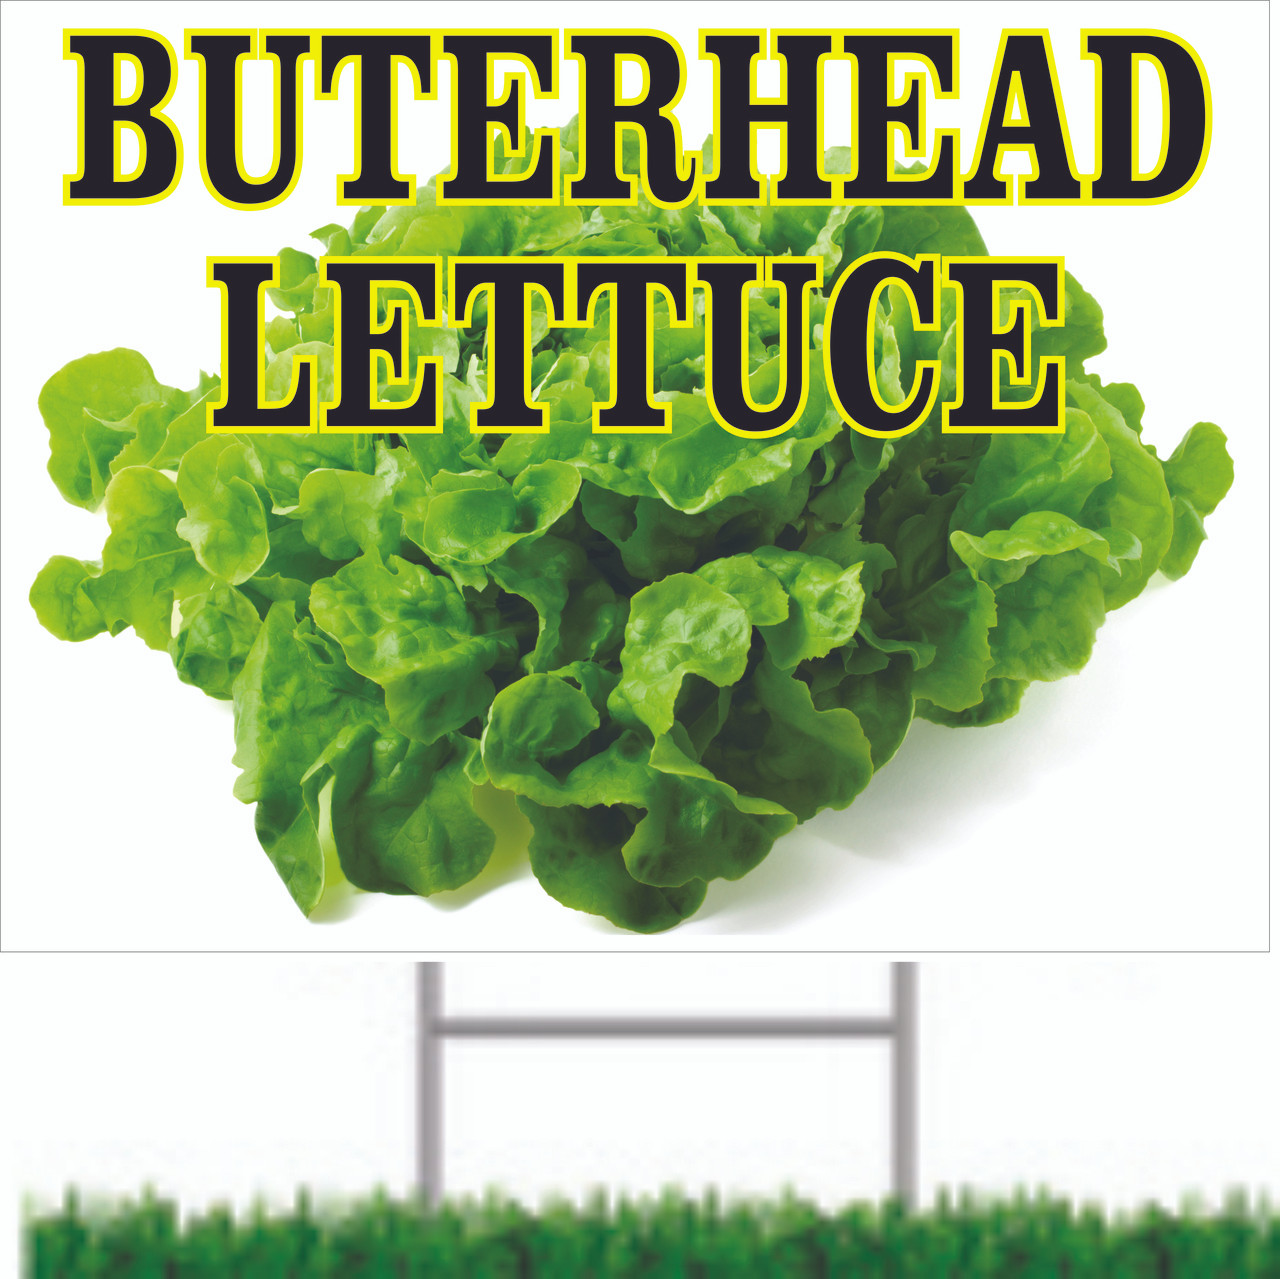 Butter Head Lettuce Road Signs Bring In Customers.